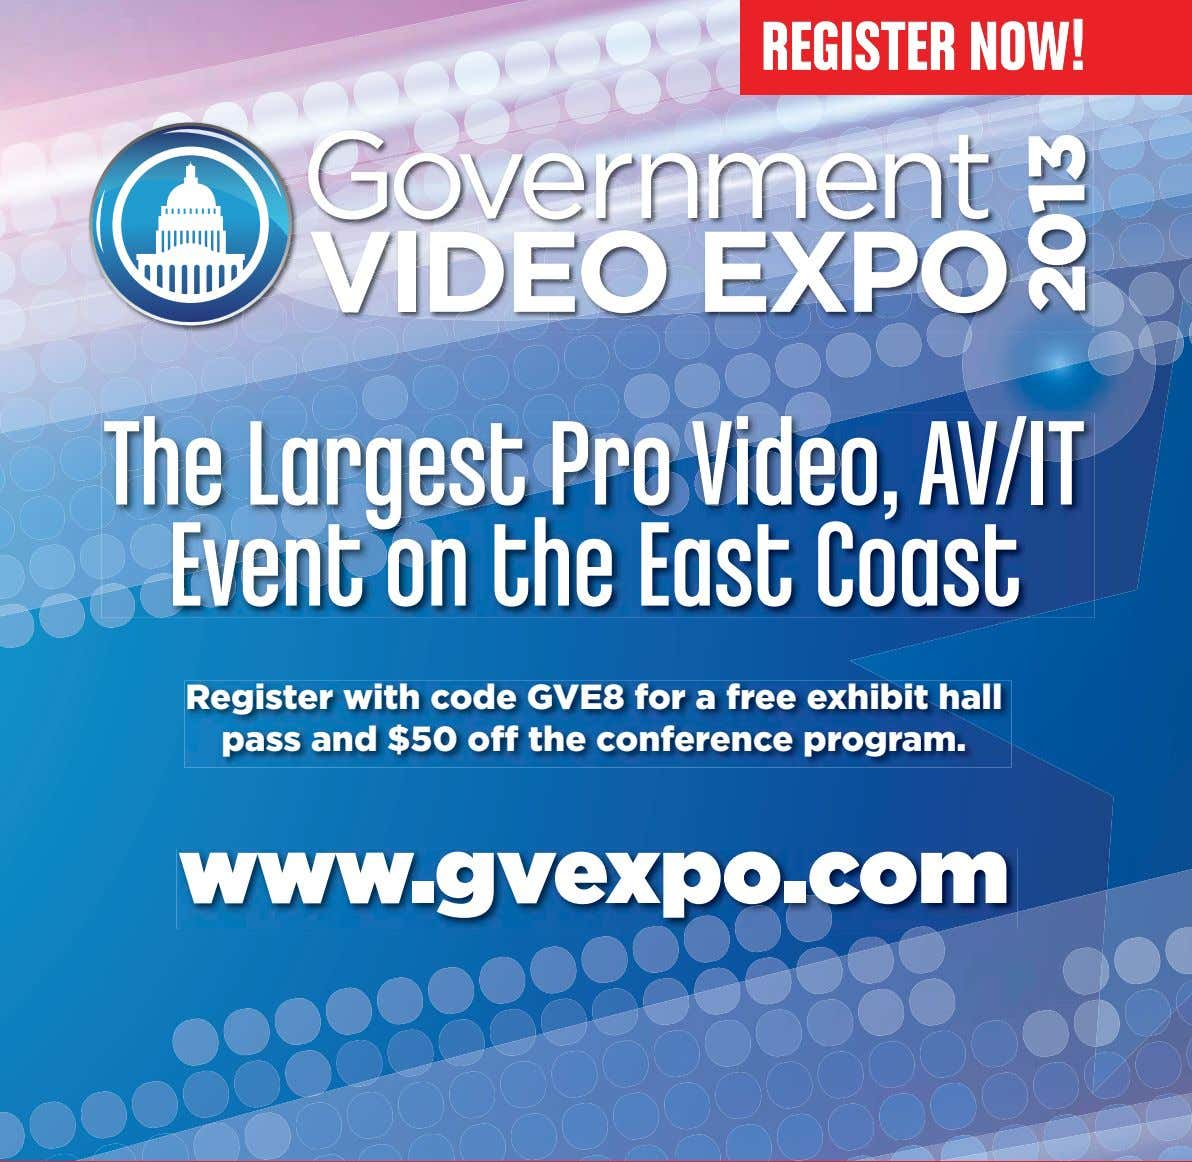 registerregisterregister now!now!now! The Largest Pro Video, AV/IT Event on the East Coast Register with code